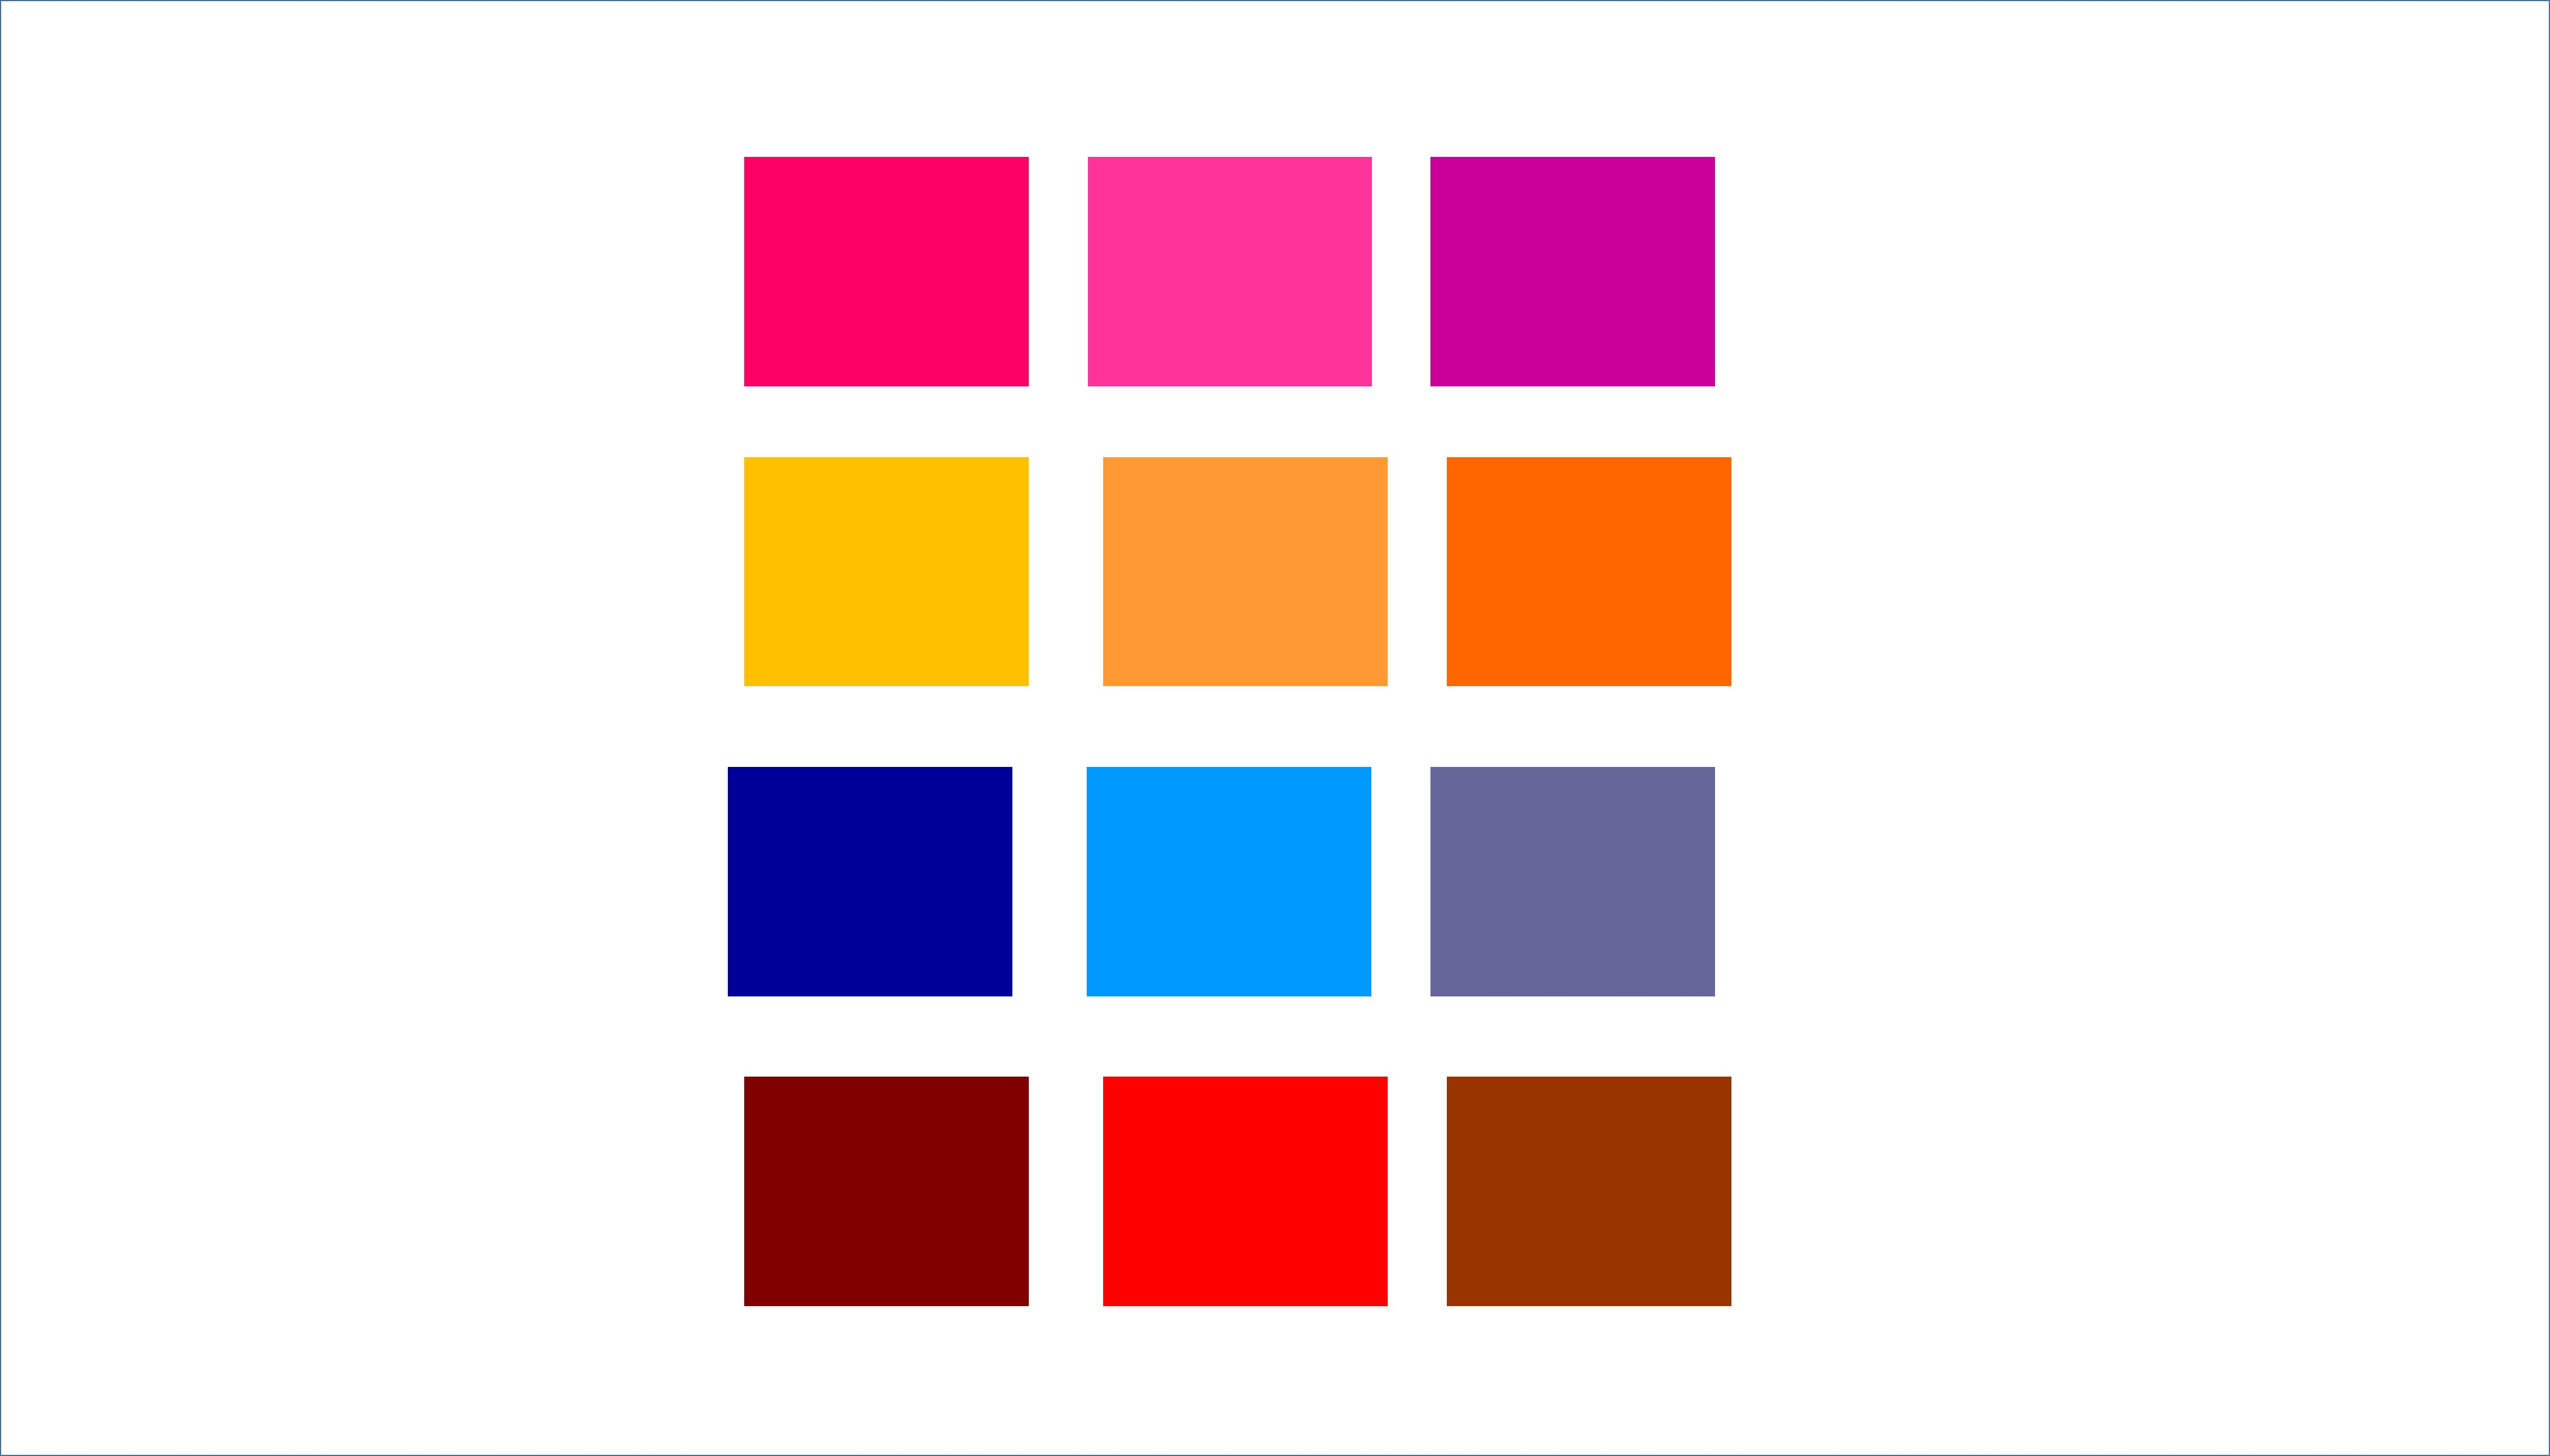 what is your age based on how you see colors playbuzz